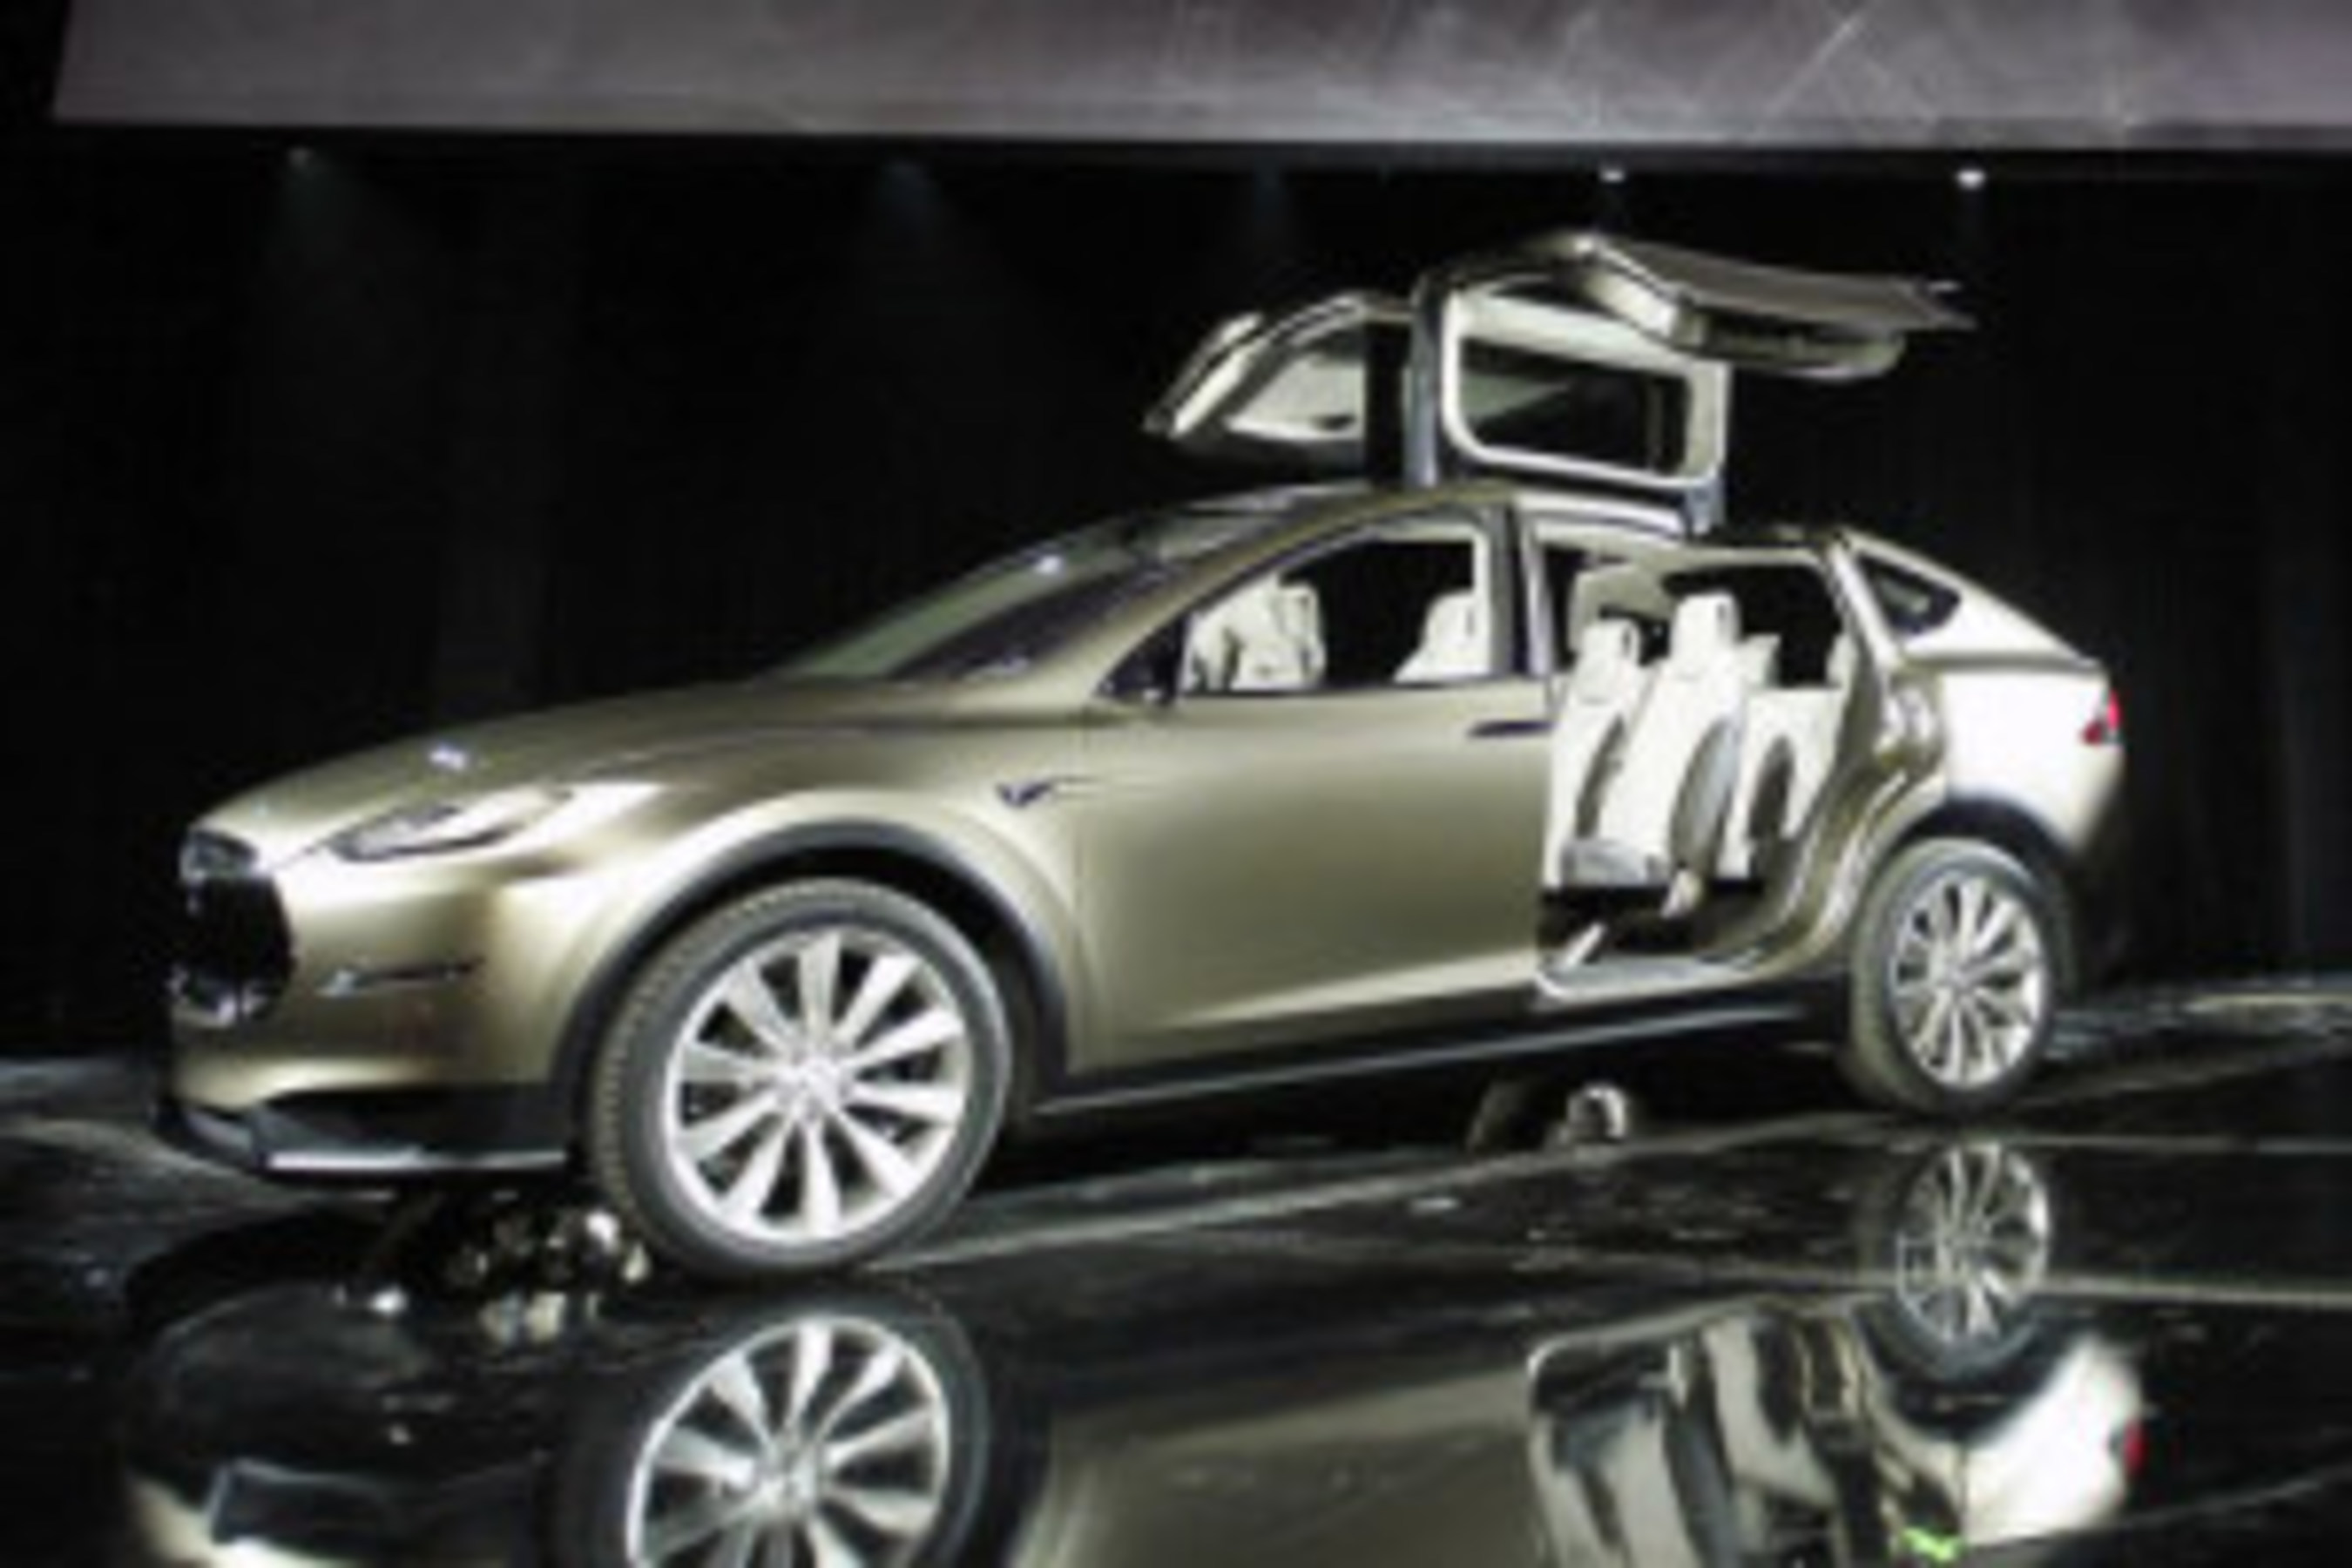 Analysts and Investors Take Keen Interest in Tesla's Model X